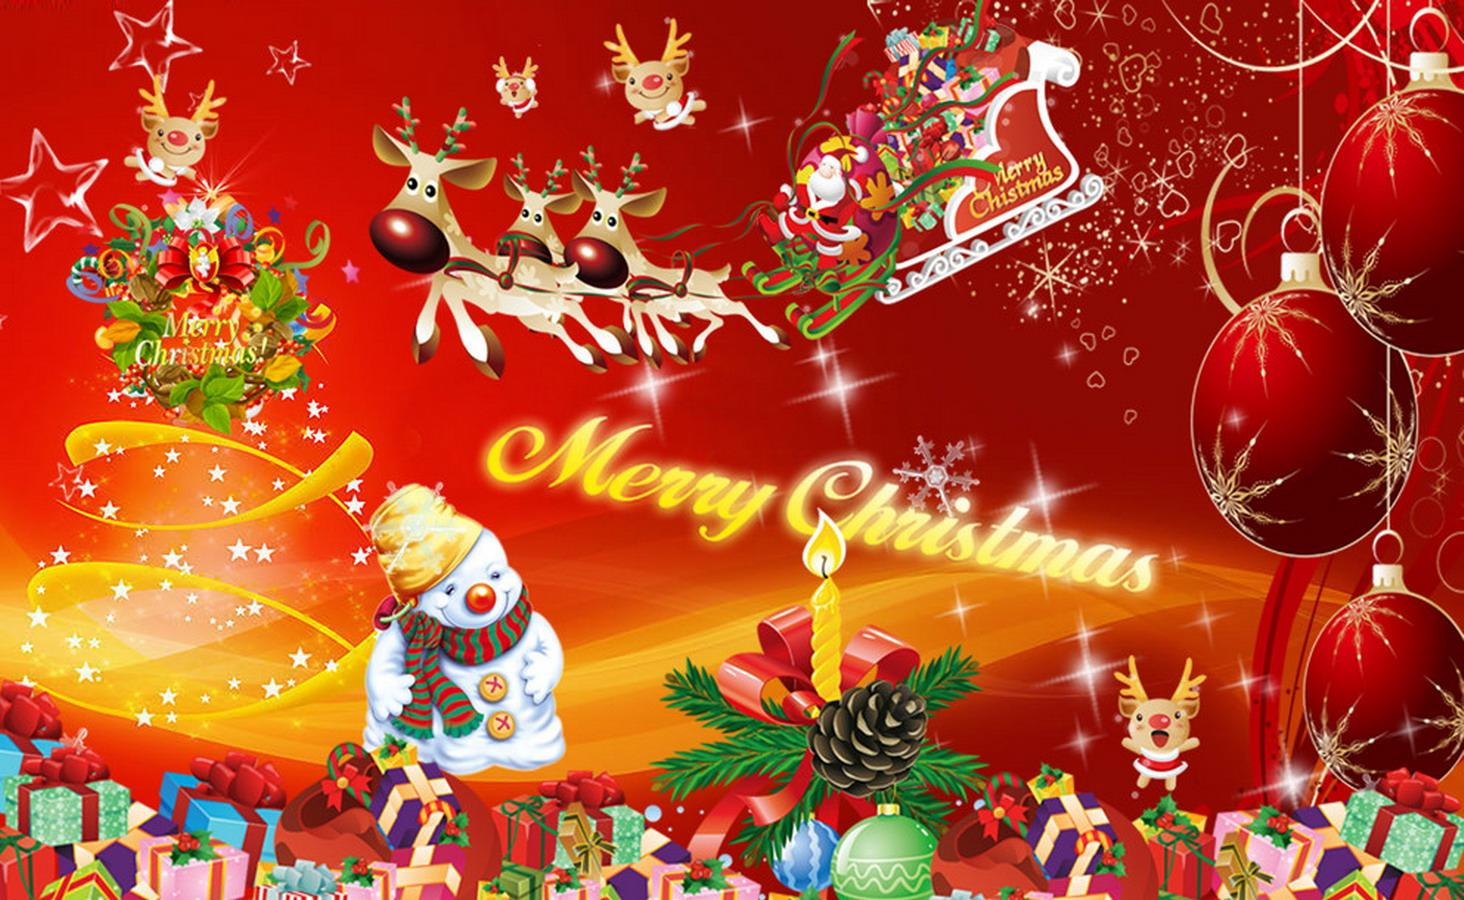 Nice Wallpapers Happy New Year Greetings Quotes 1080p Xmas Wallpaper For Android 19 Wallpapers Adorable